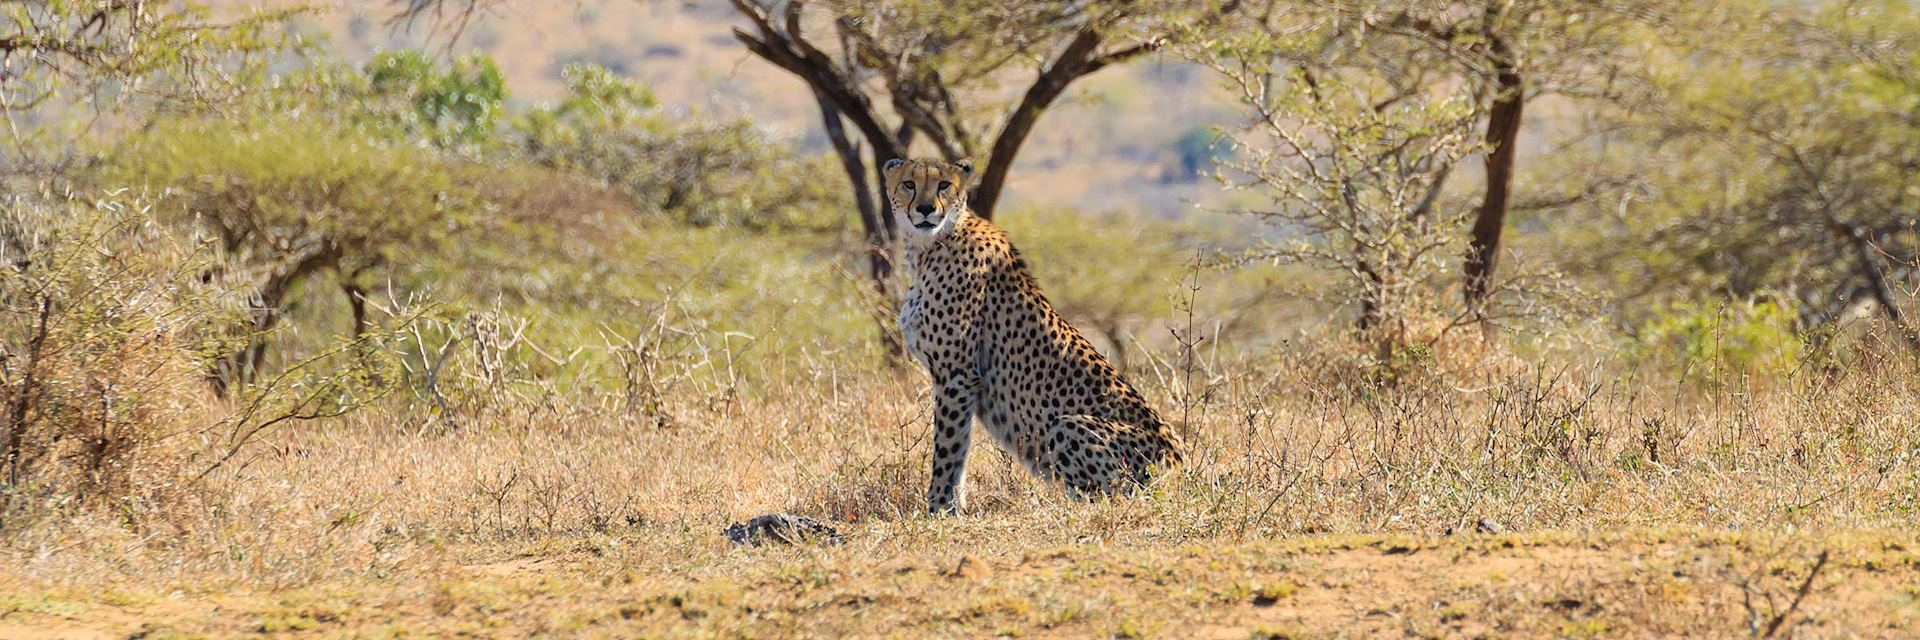 Cheetah in Hluhluwe-IMfolozi Game Reserve